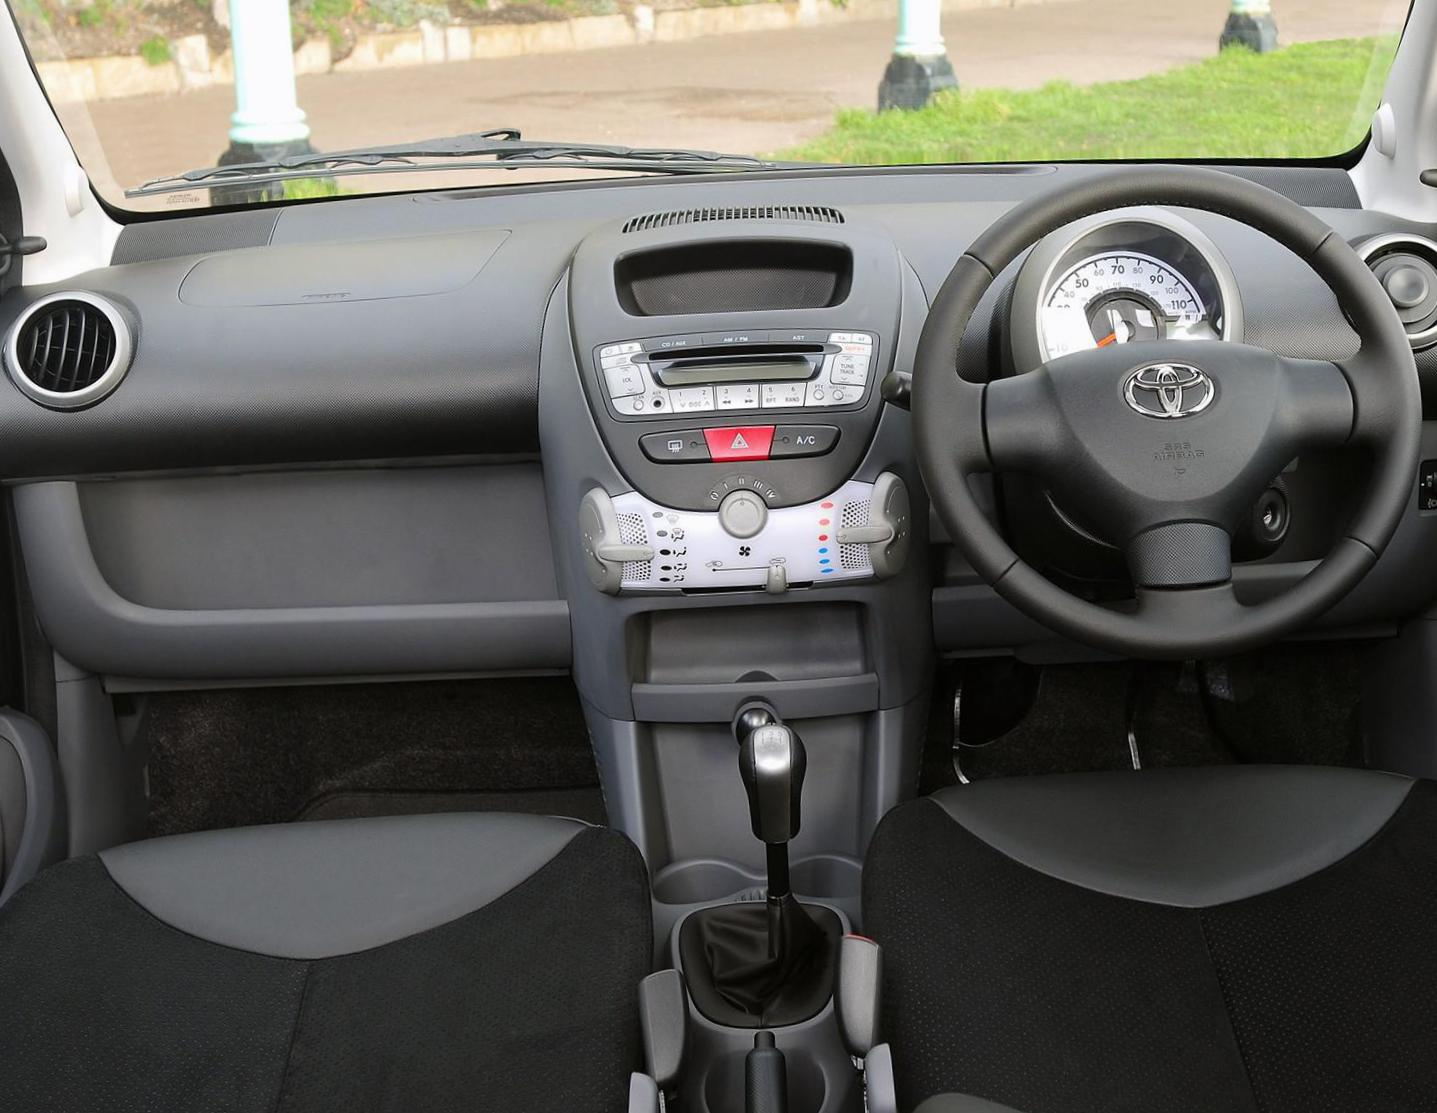 Toyota Aygo model suv